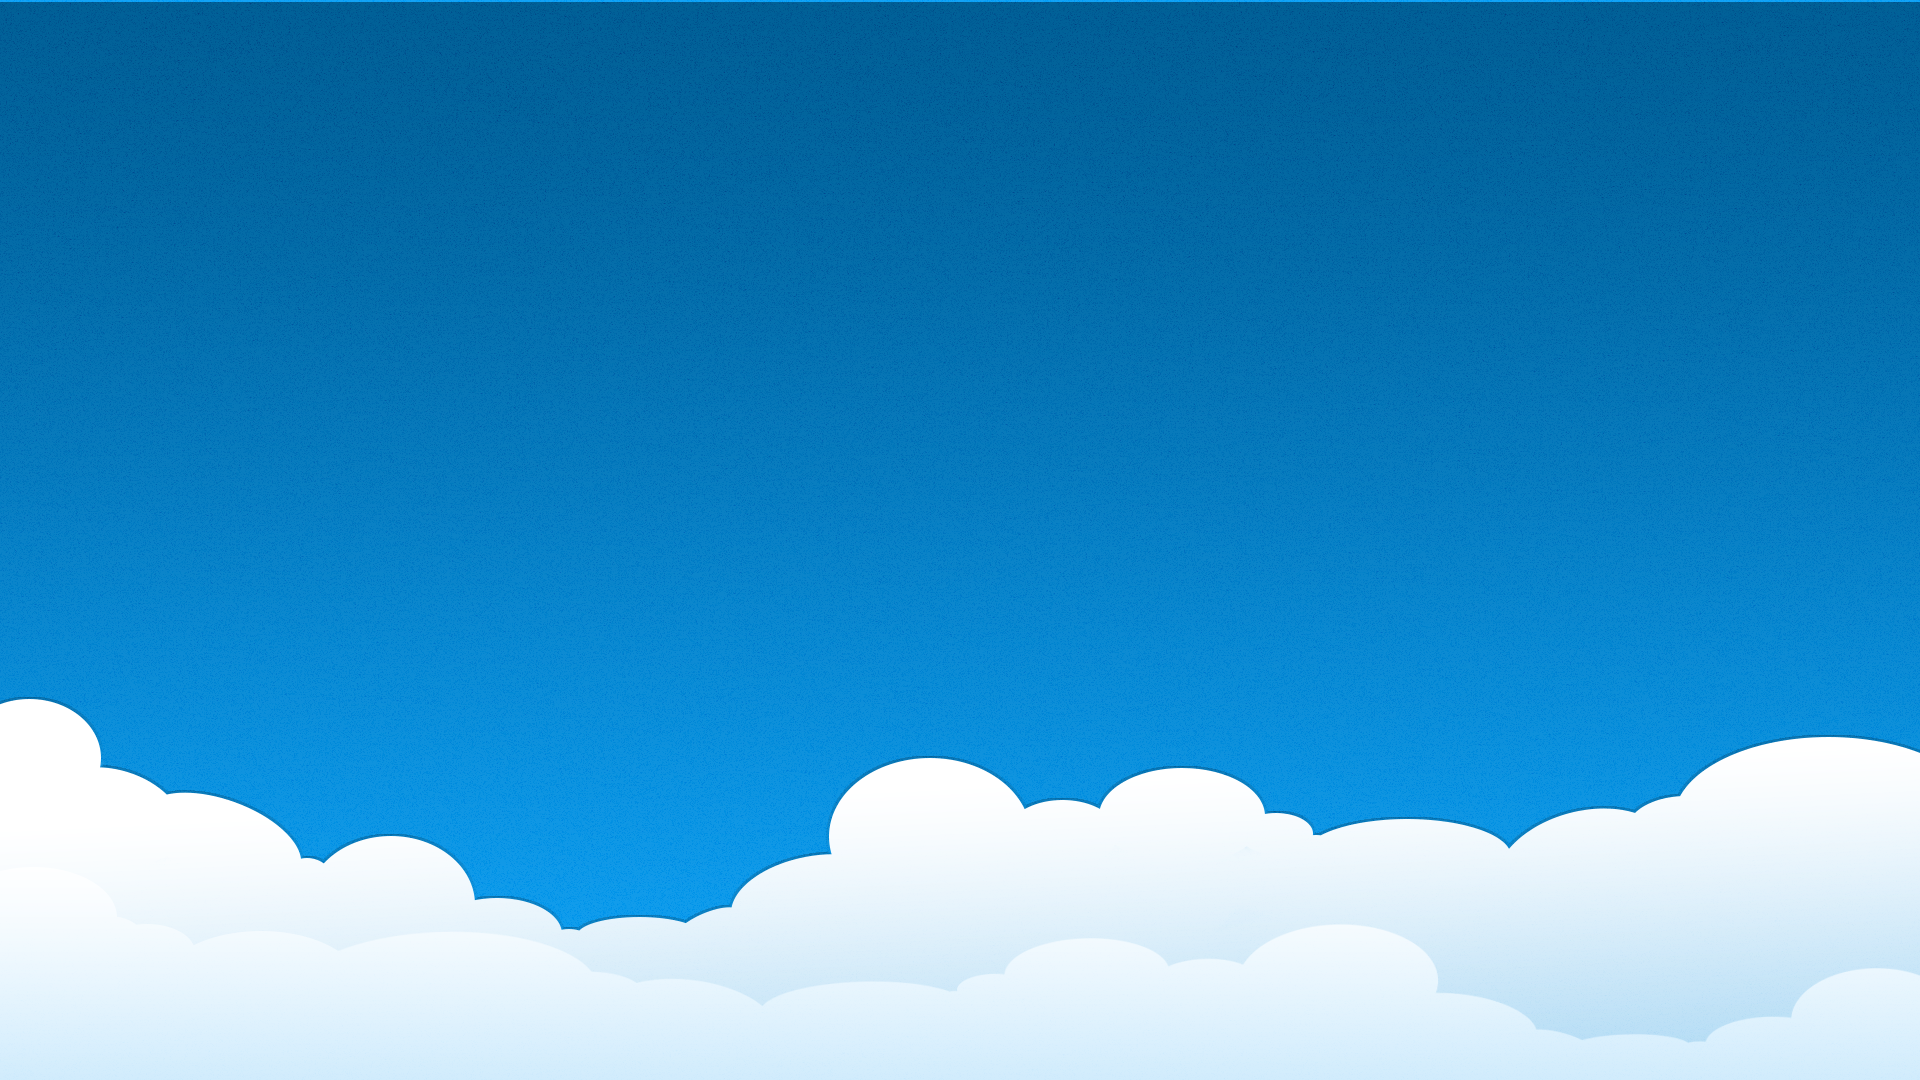 cloud wallpaper hd background 5png   ionCube Blog 1920x1080